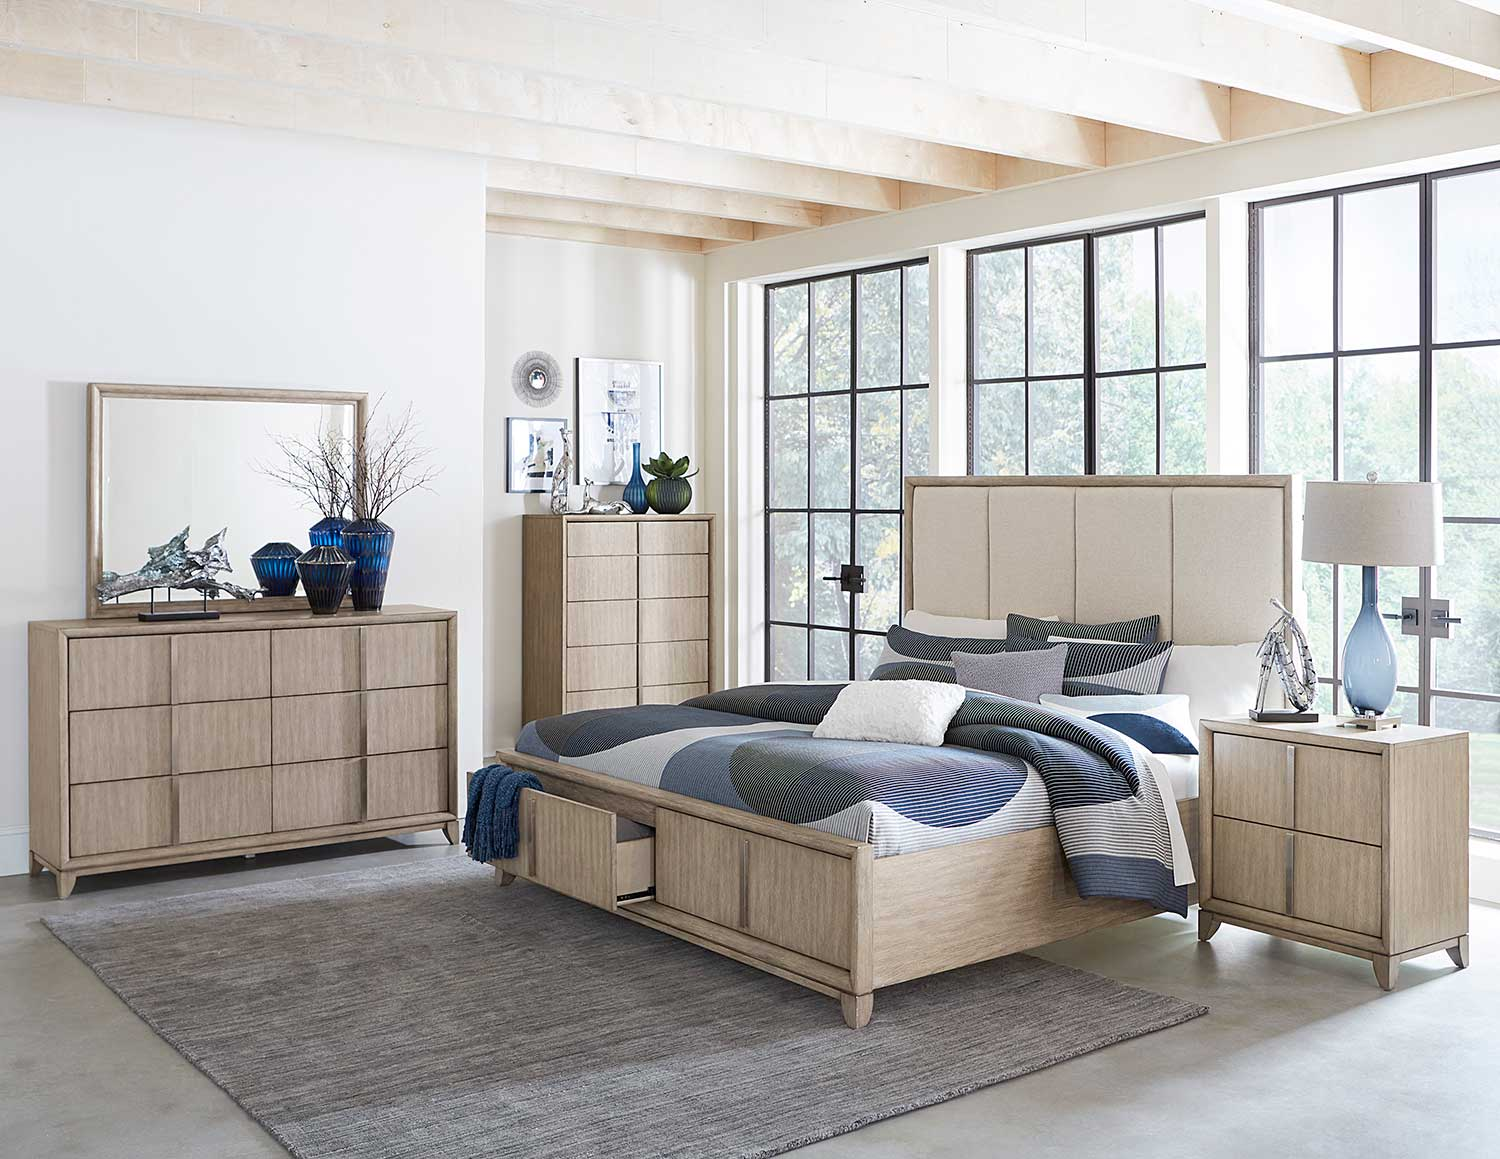 Homelegance McKewen Bedroom Set - Light Gray